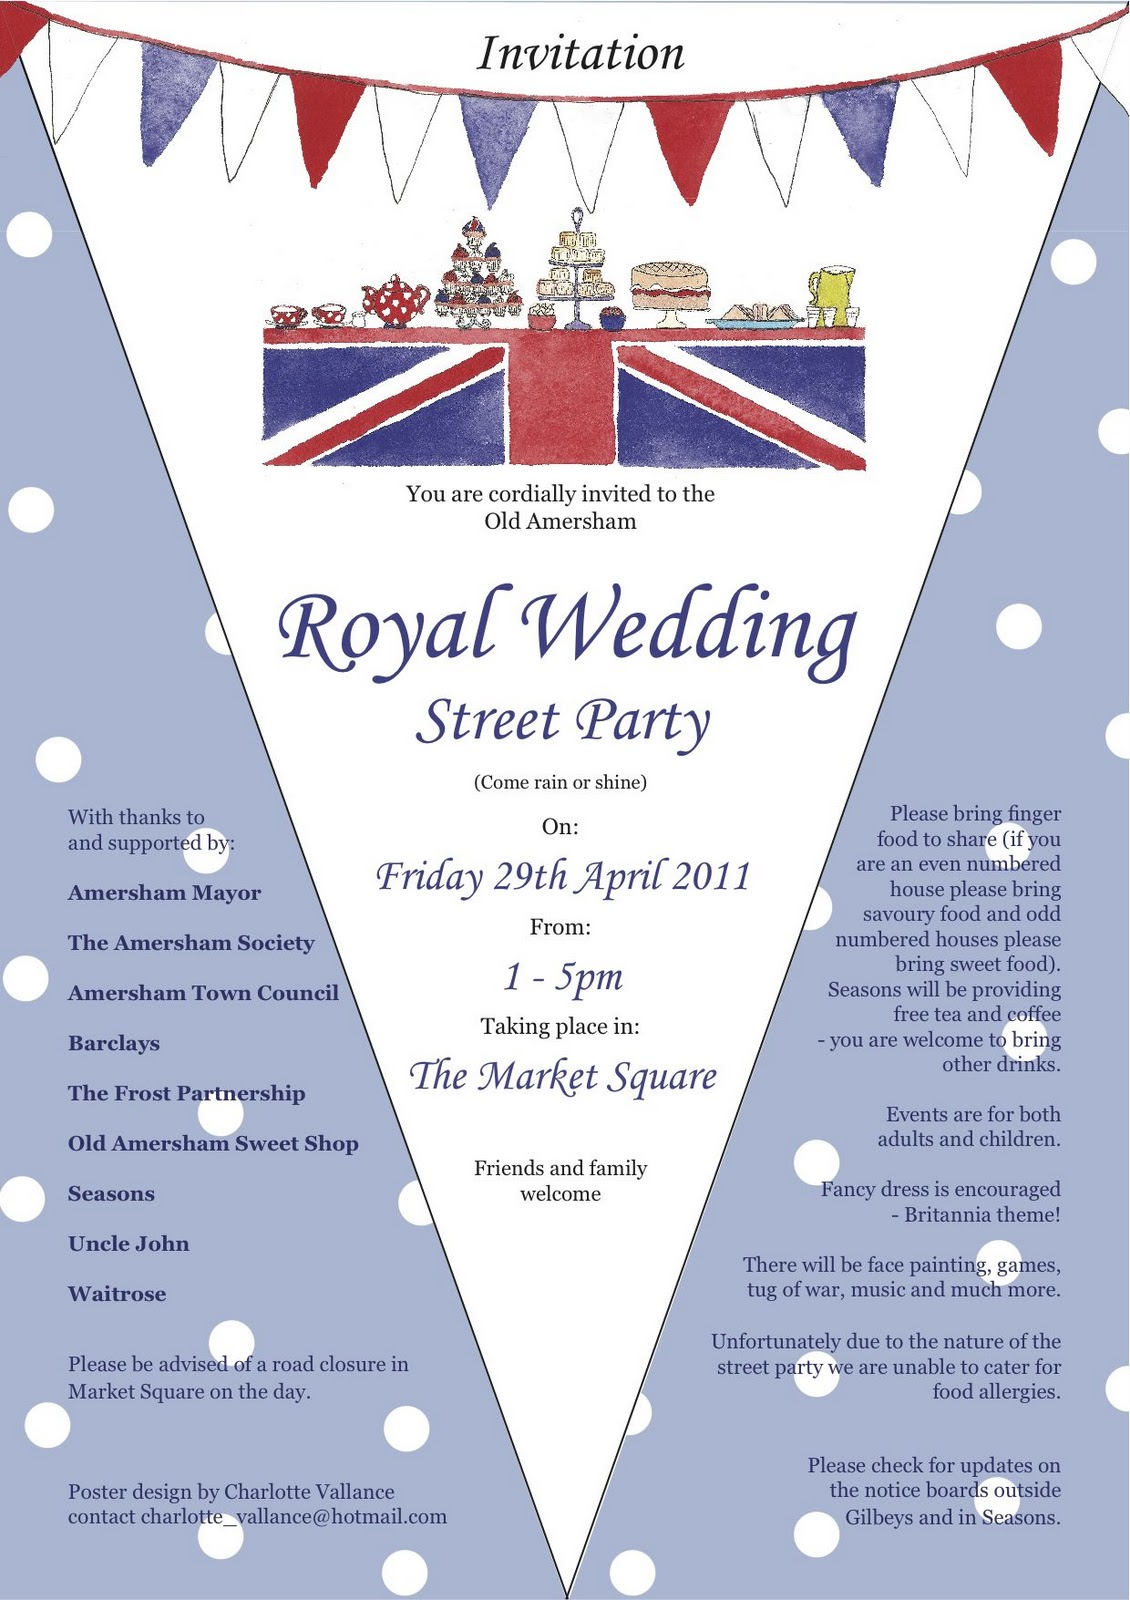 Charlotte Vallance: Royal wedding Street Party